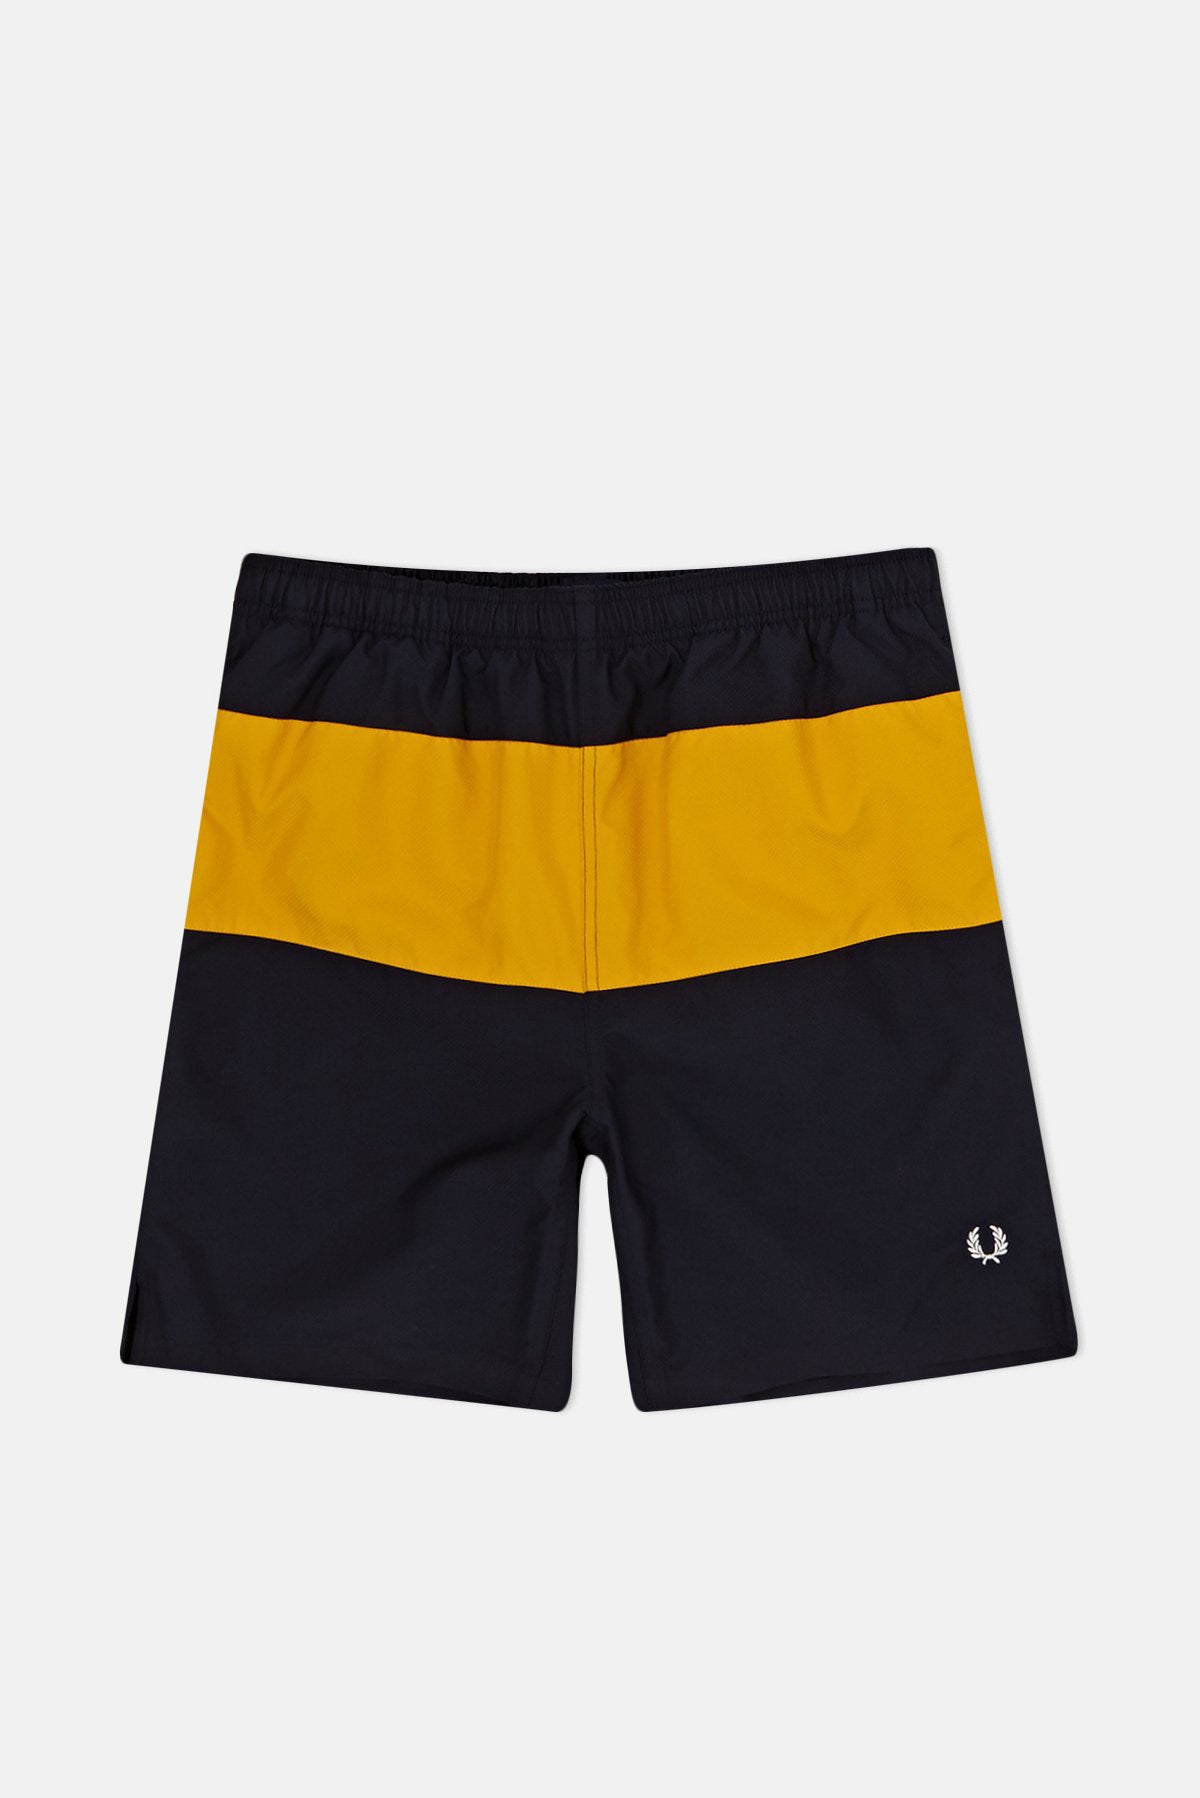 8dfecd762debe Fred Perry Panelled Swim Shorts available from Priory